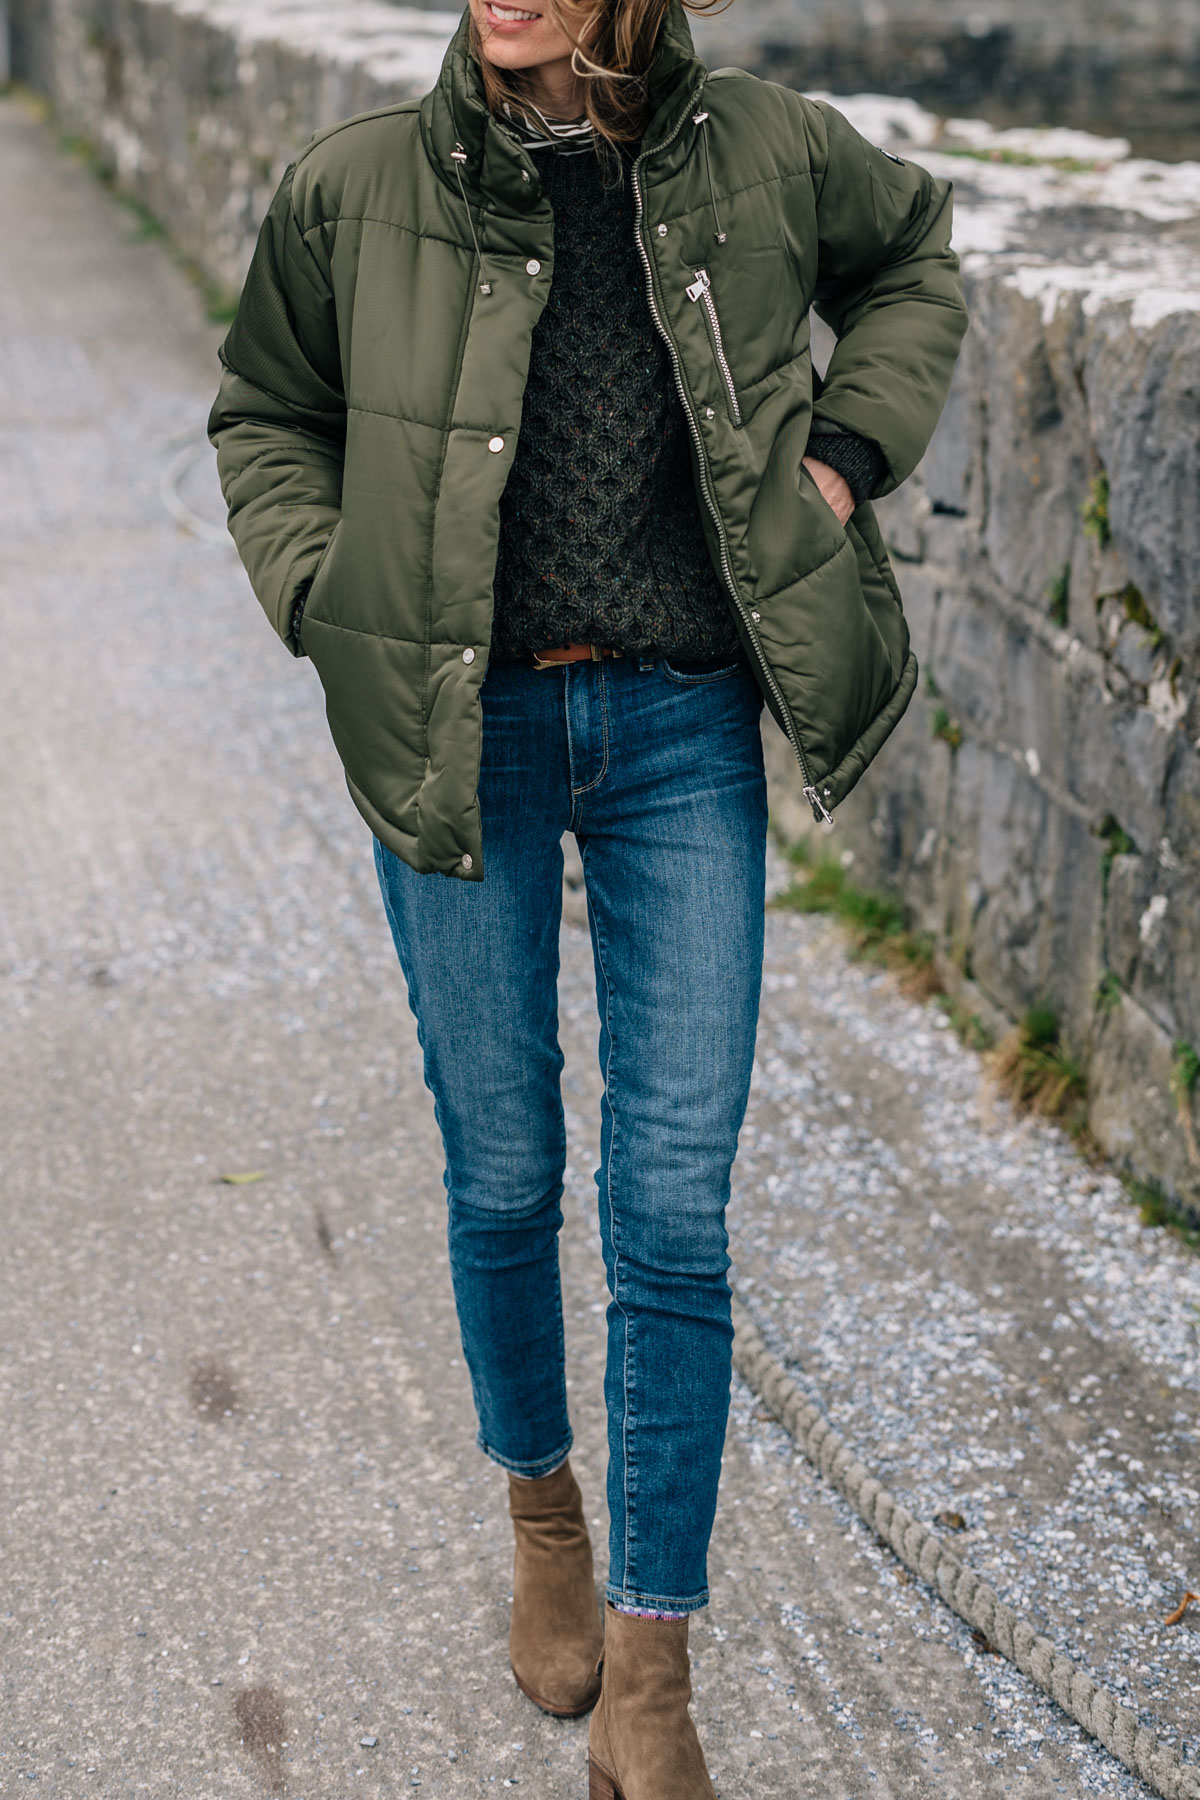 Jess Ann Kirby fall outfit in an army green puffer coat and paige skinny jeans